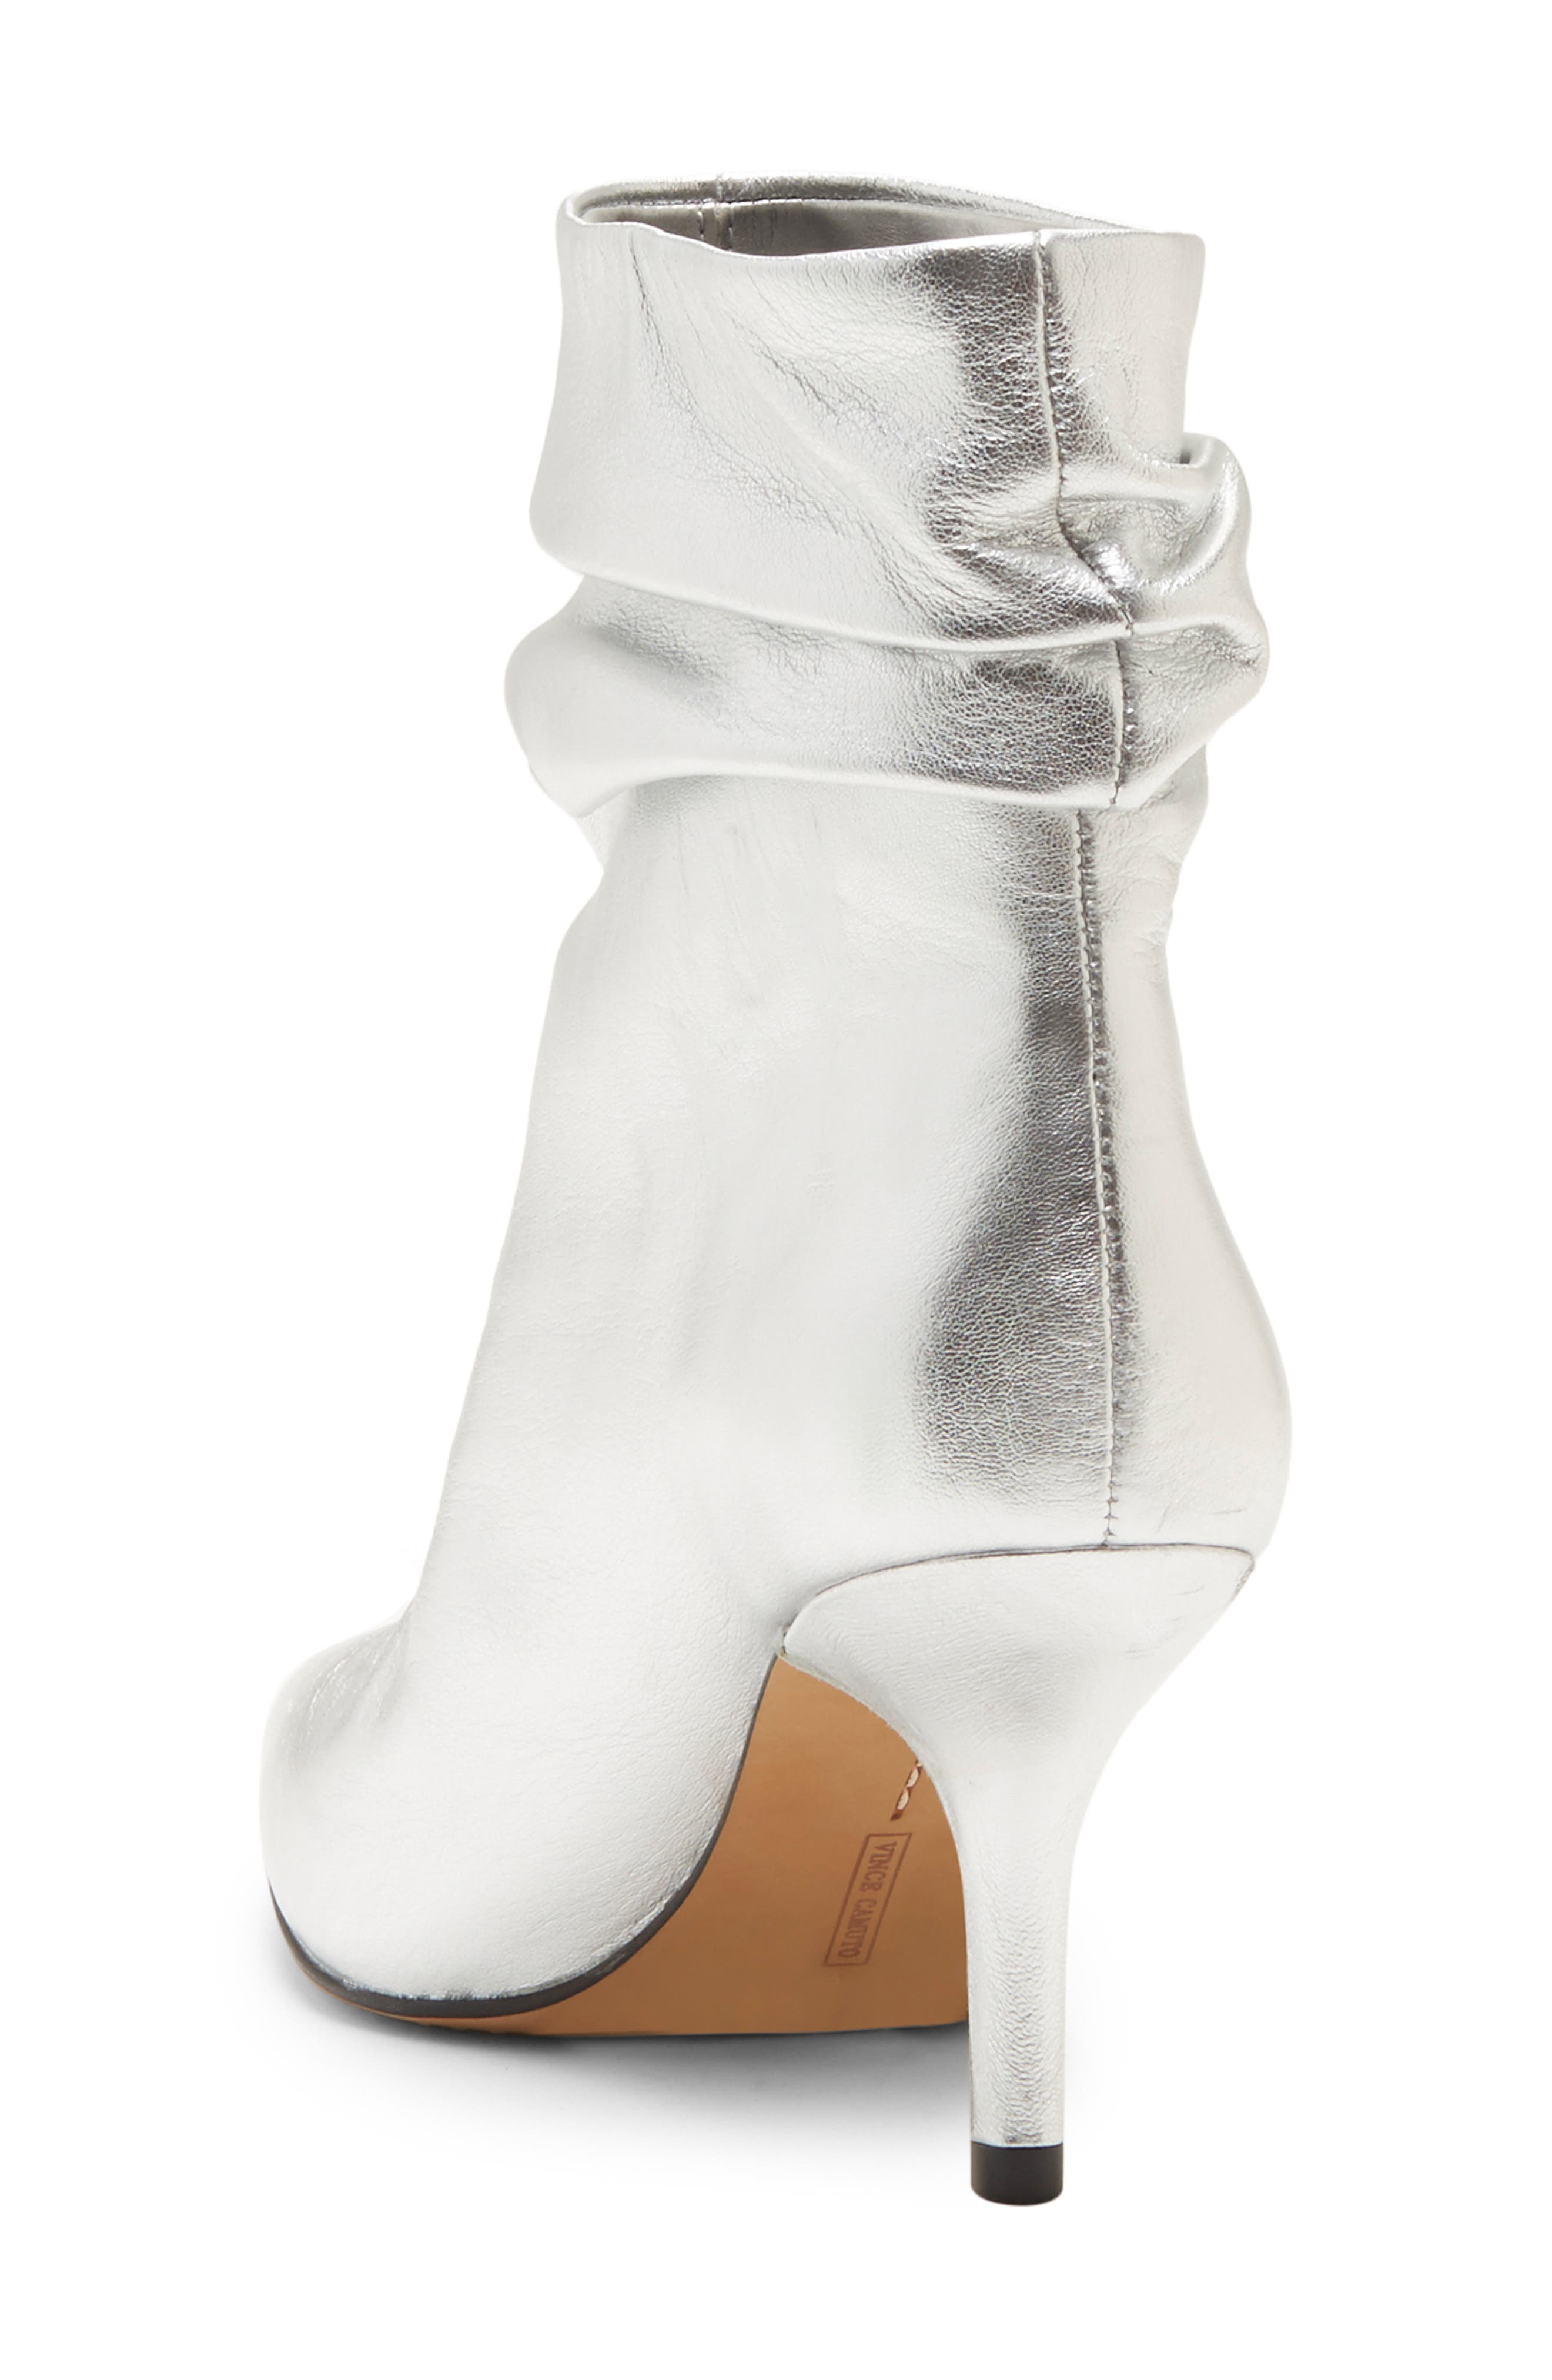 VINCE CAMUTO, Abrianna Bootie, Alternate thumbnail 2, color, GLEAMING SILVER LEATHER